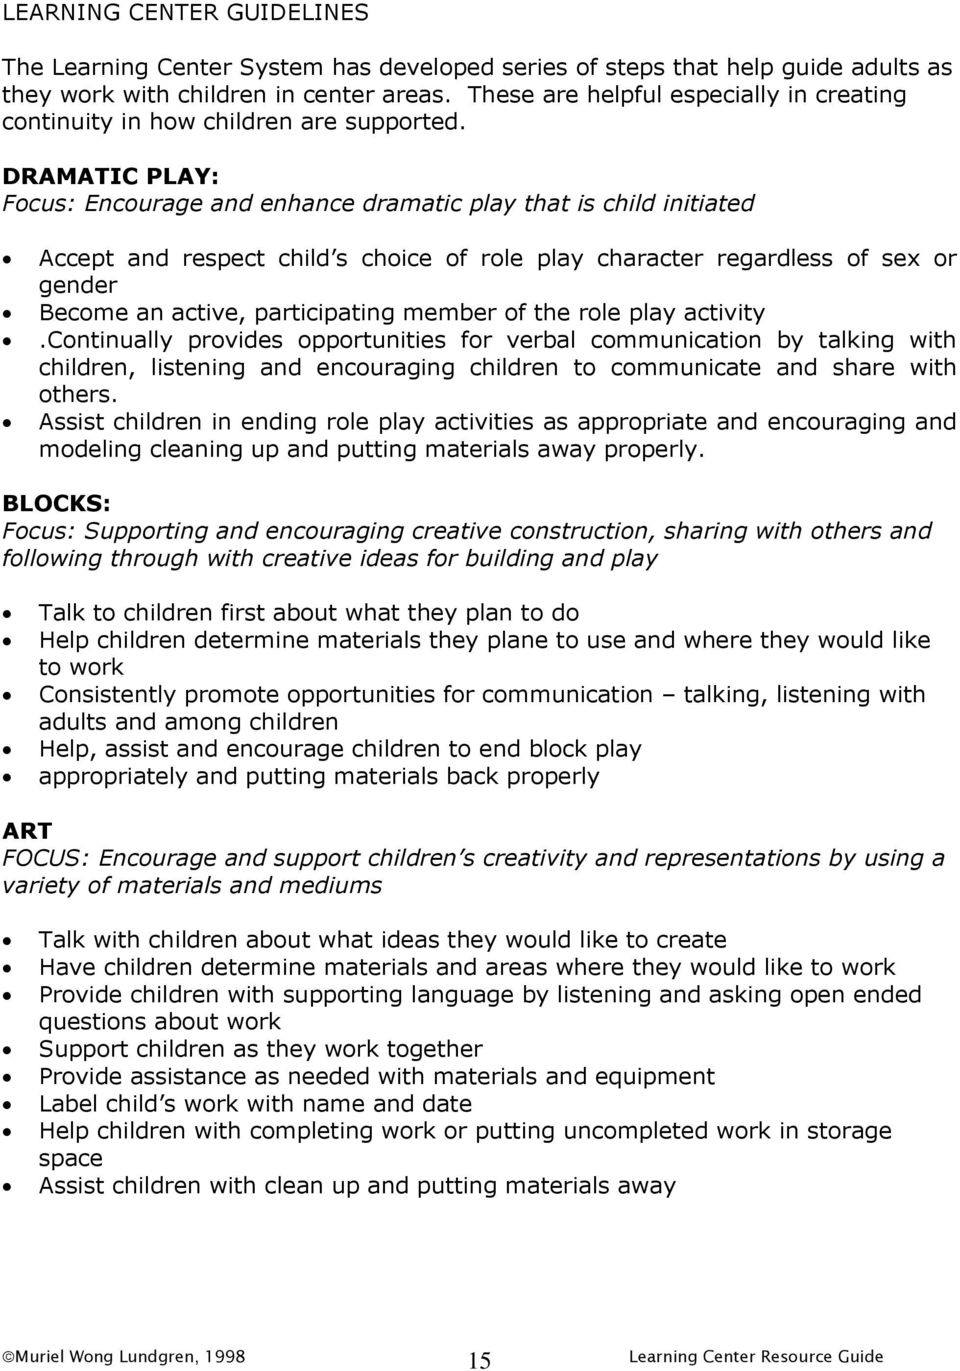 DRAMATIC PLAY: Focus: Encourage and enhance dramatic play that is child initiated Accept and respect child s choice of role play character regardless of sex or gender Become an active, participating